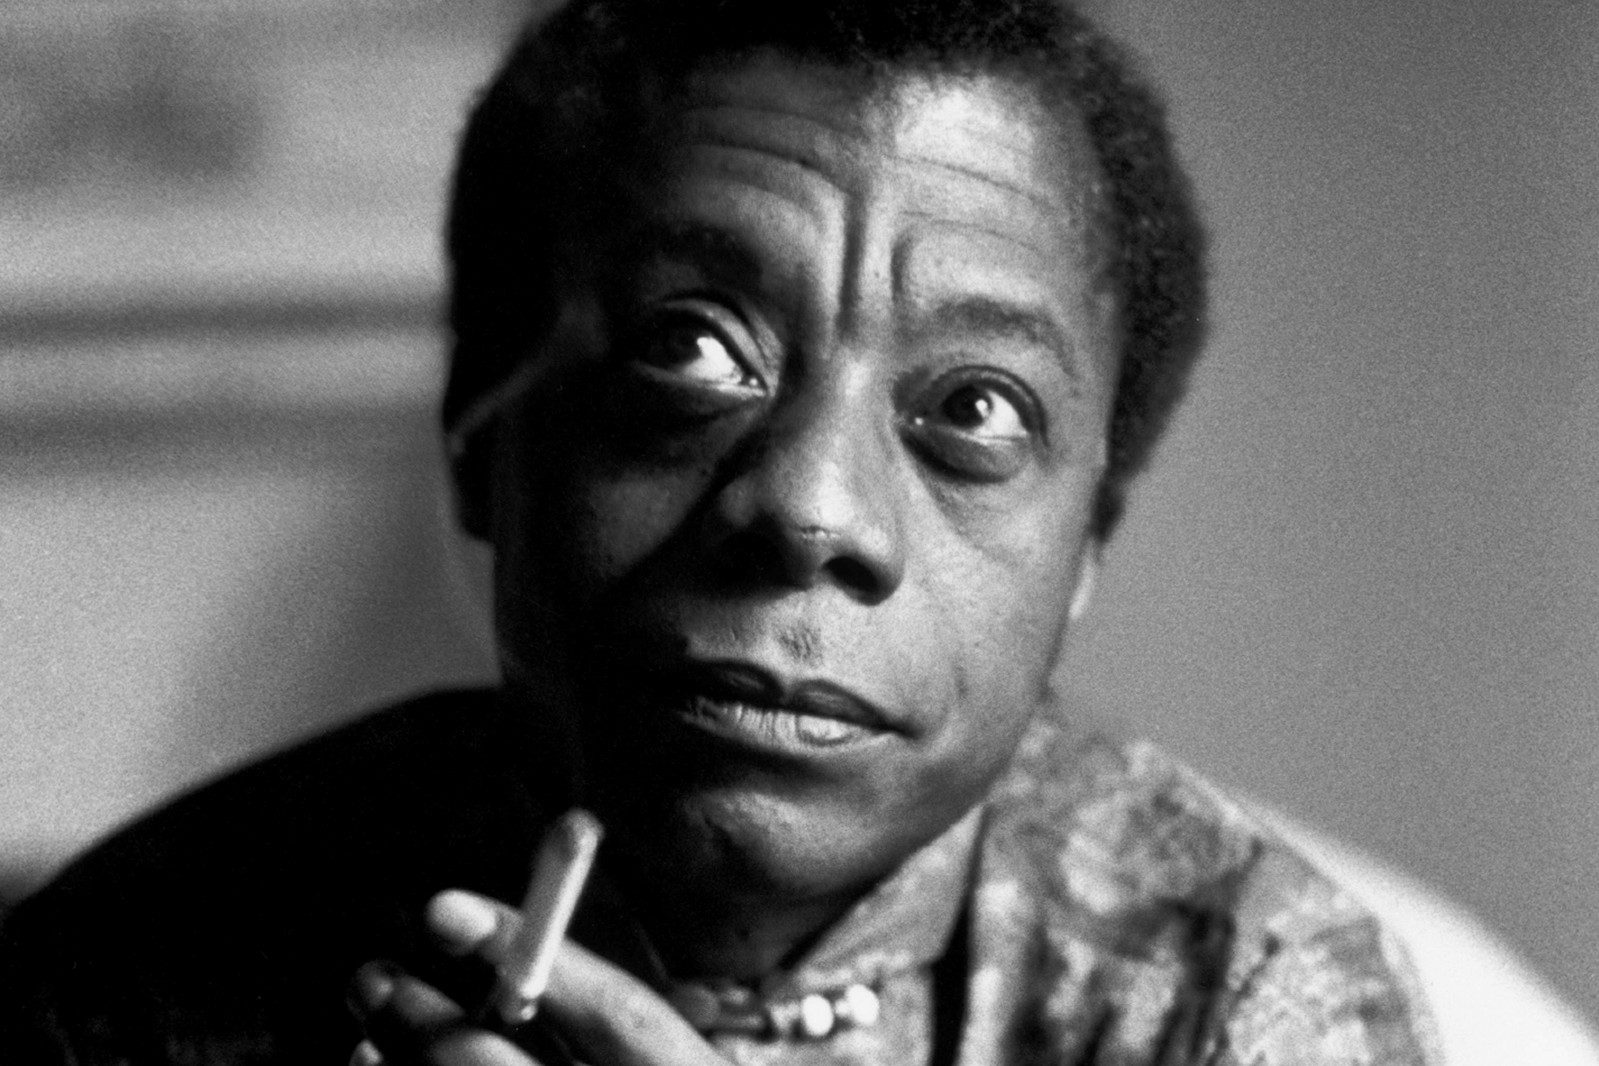 james baldwin essay on michael jackson Essay about james baldwin's sonny's blues more about an older brother's influence in james baldwin's sonny's blues michael jackson.